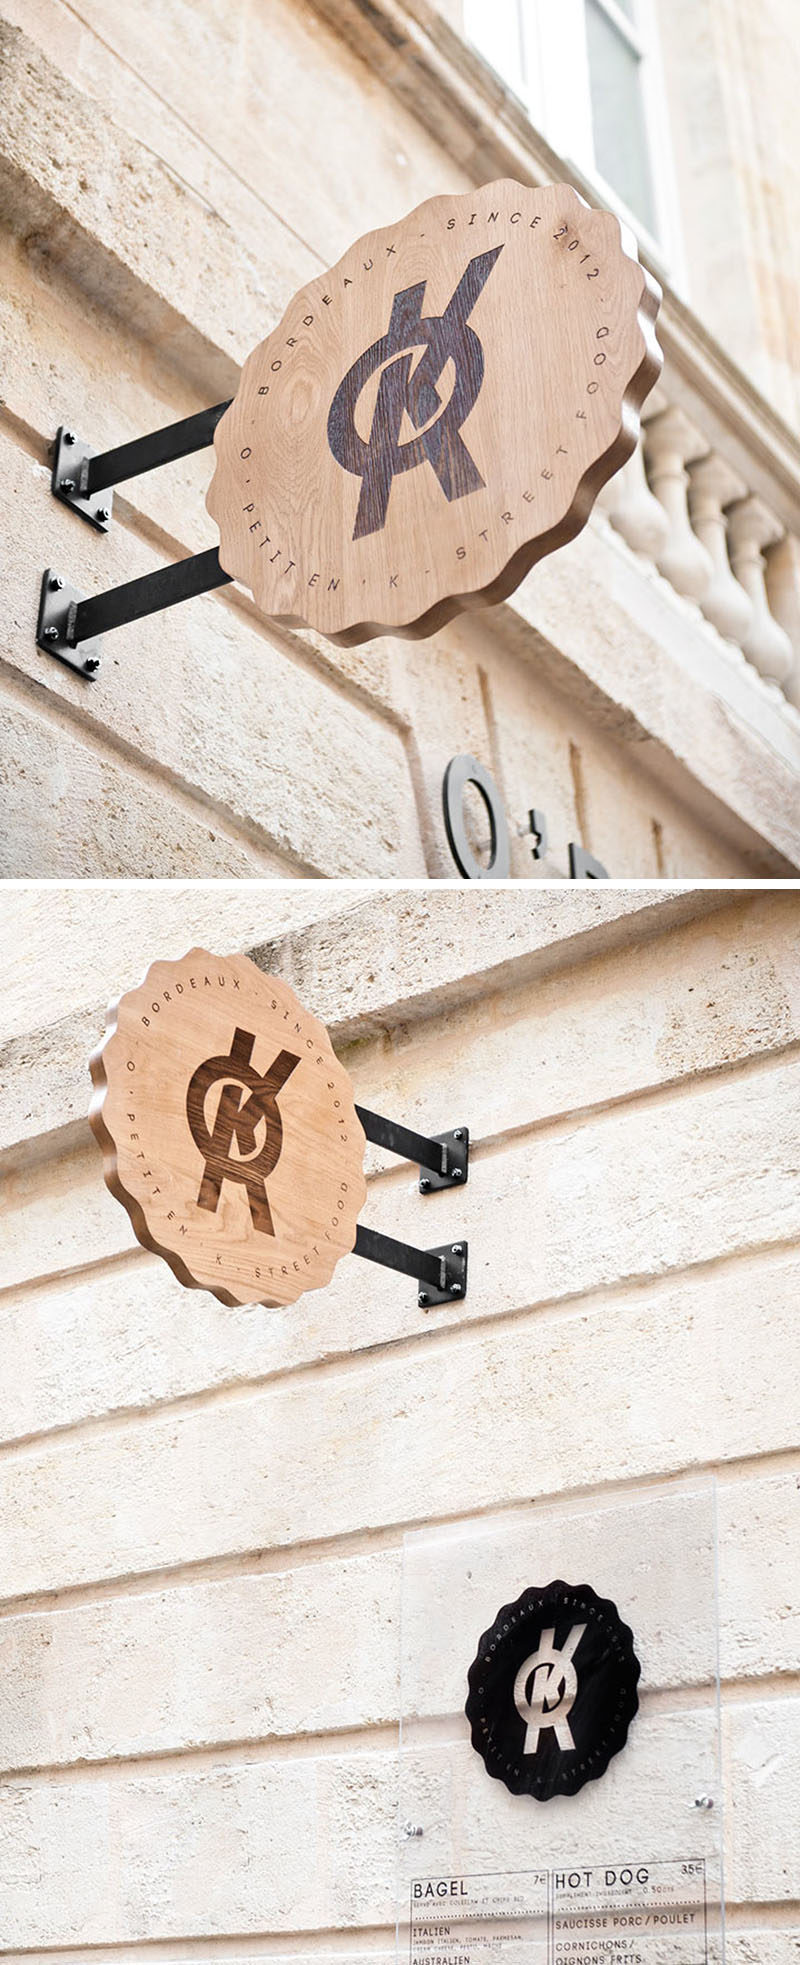 The logo for the street food brand O'Petit en'K has been burned into this round sign creating a dark contrast on the light wood.